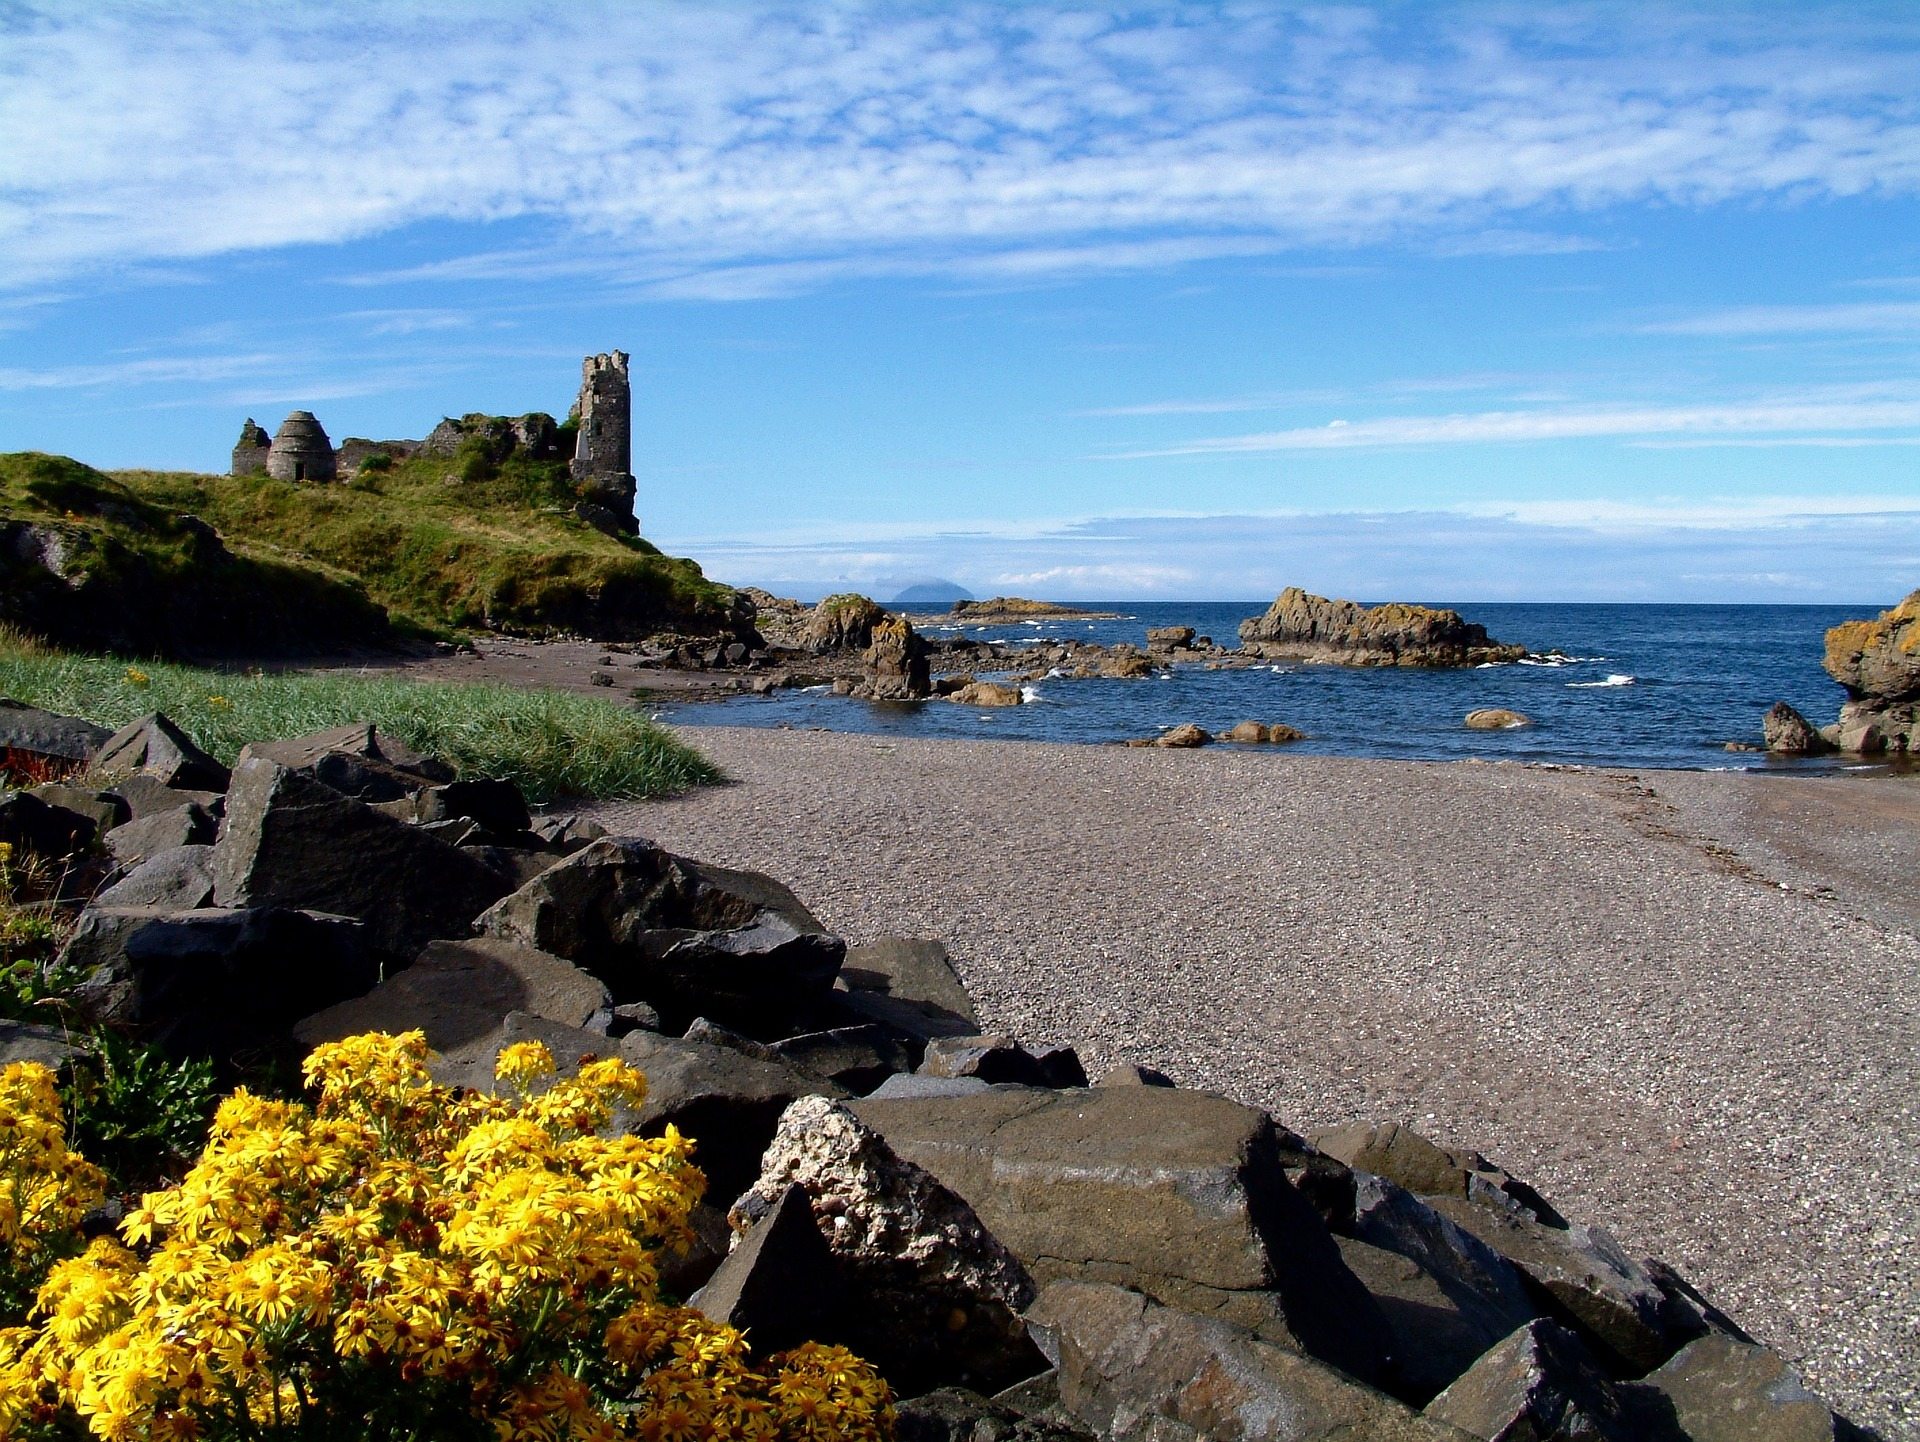 scotland, castle ruins, beach